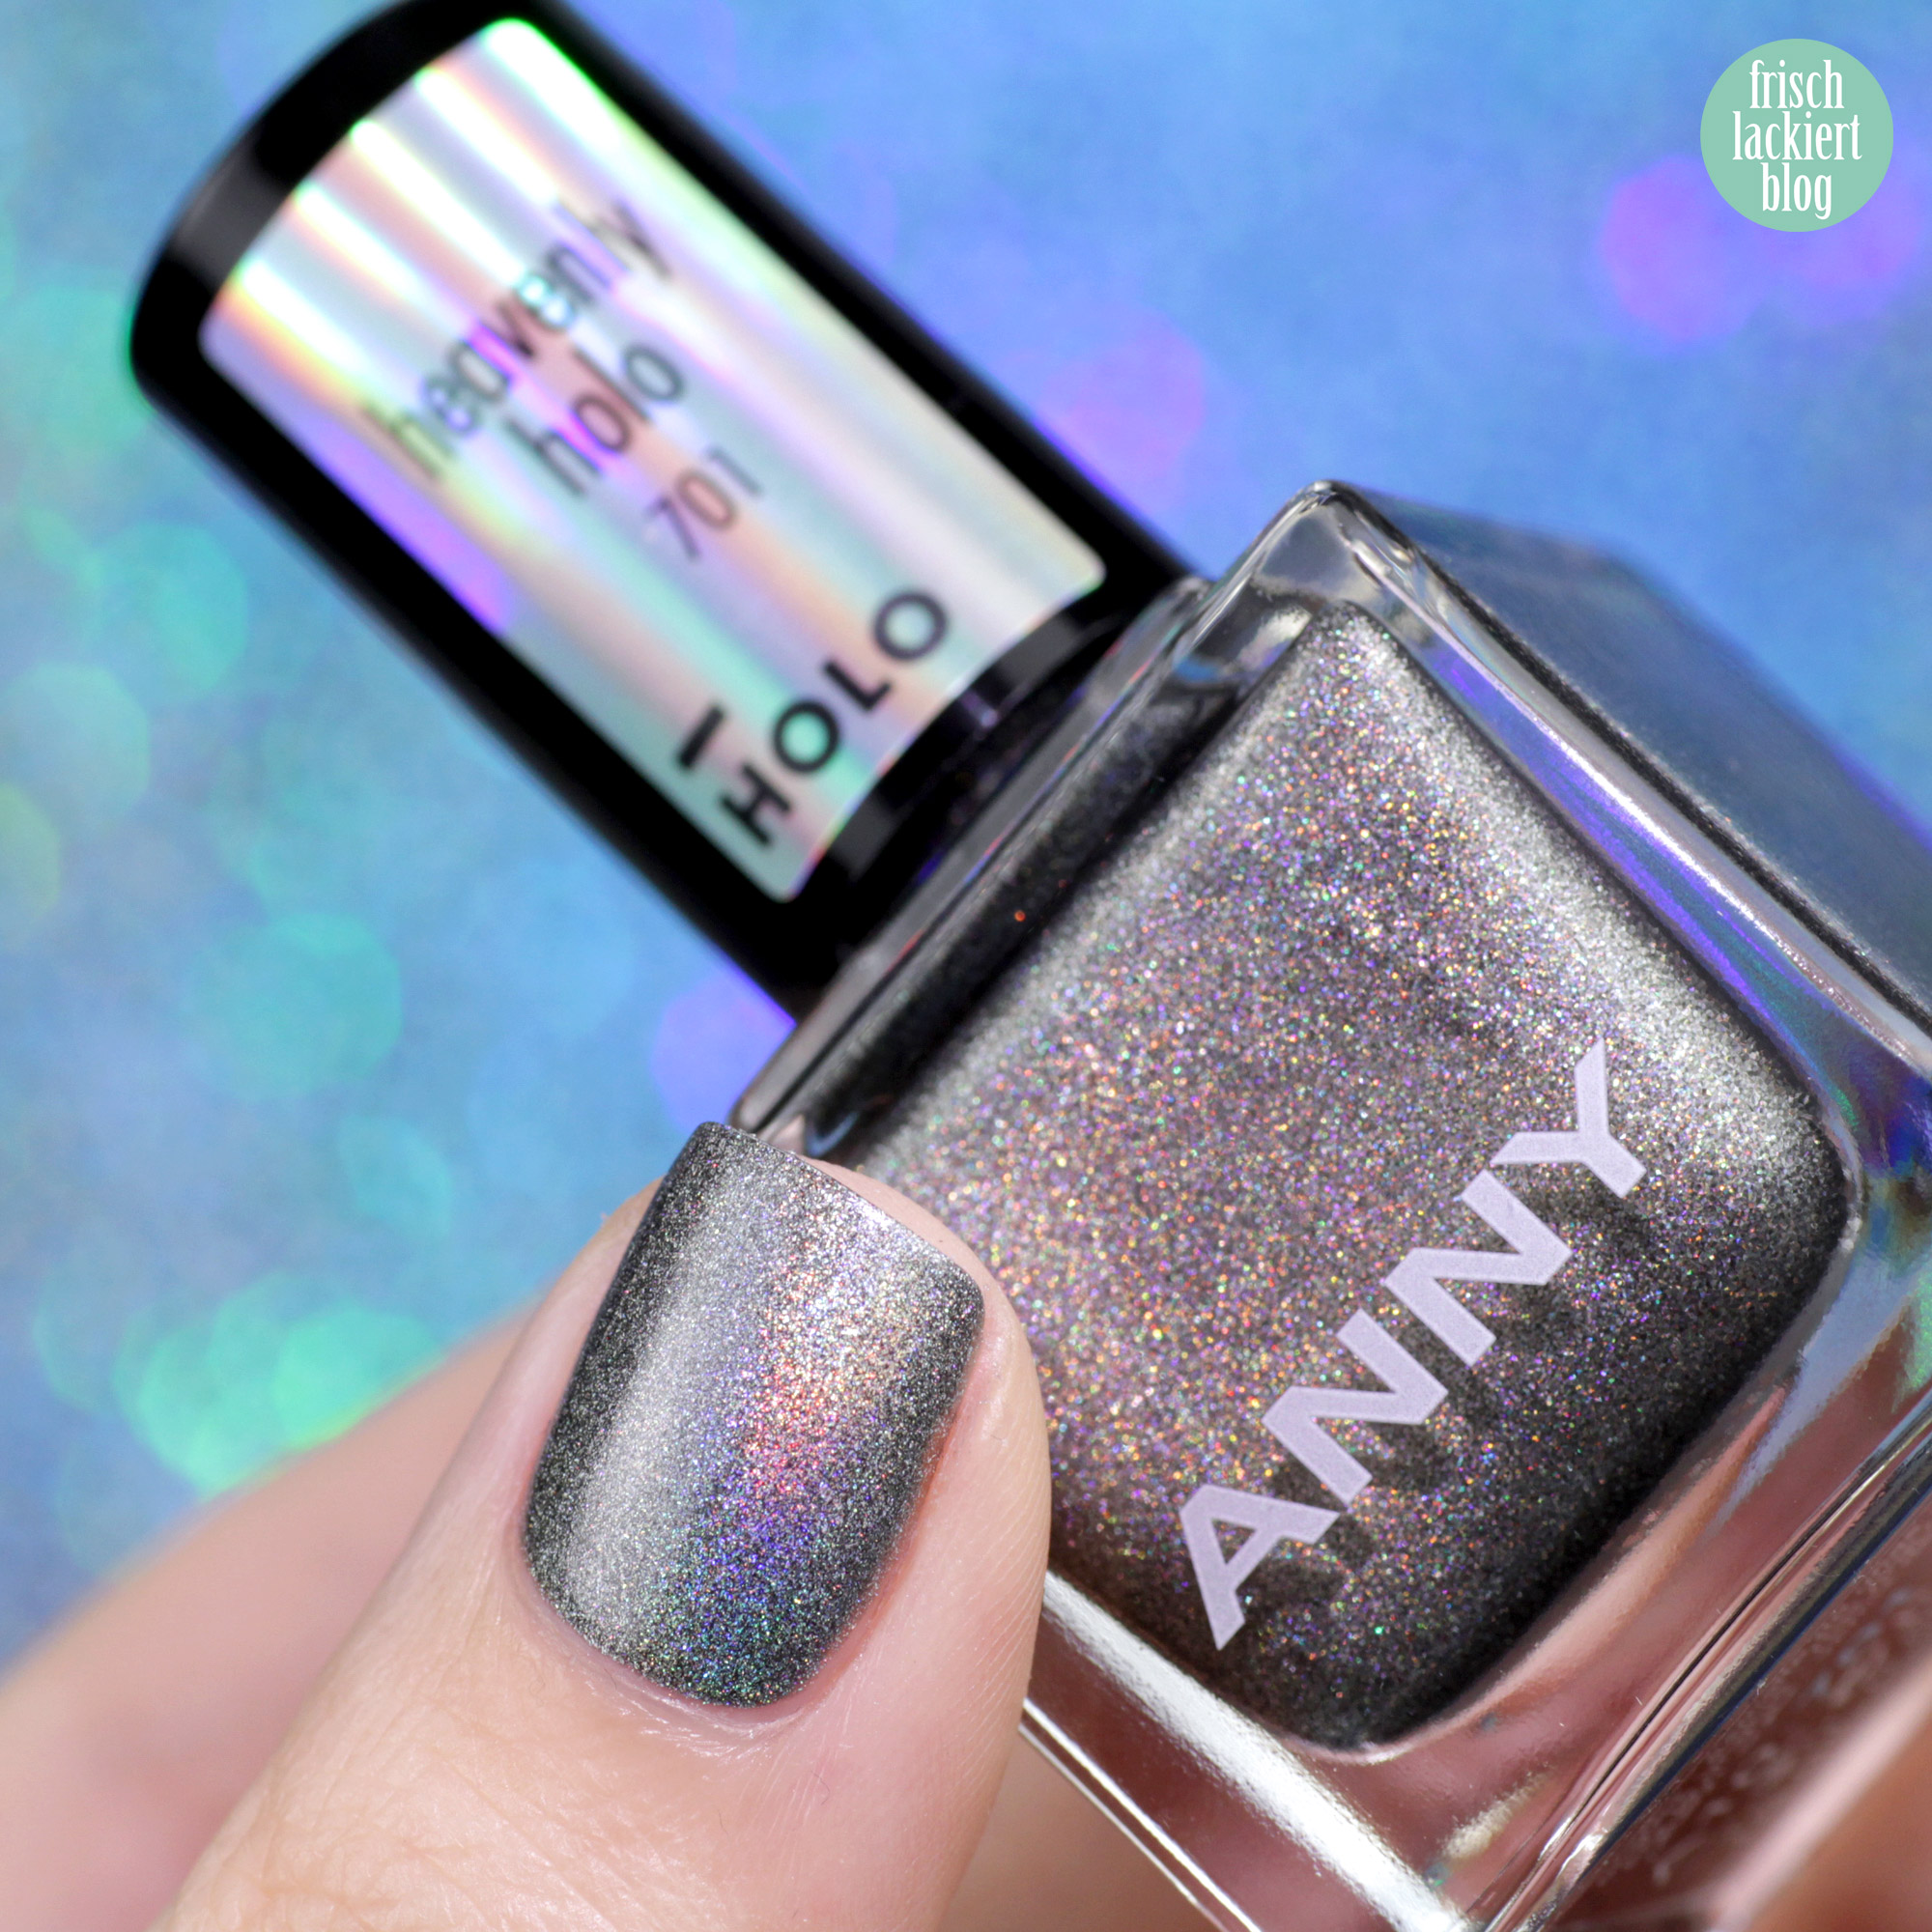 ANNY Holo it´s ANNY Nagellack Kollektion - heavenly holo - swatch by frischlackiert